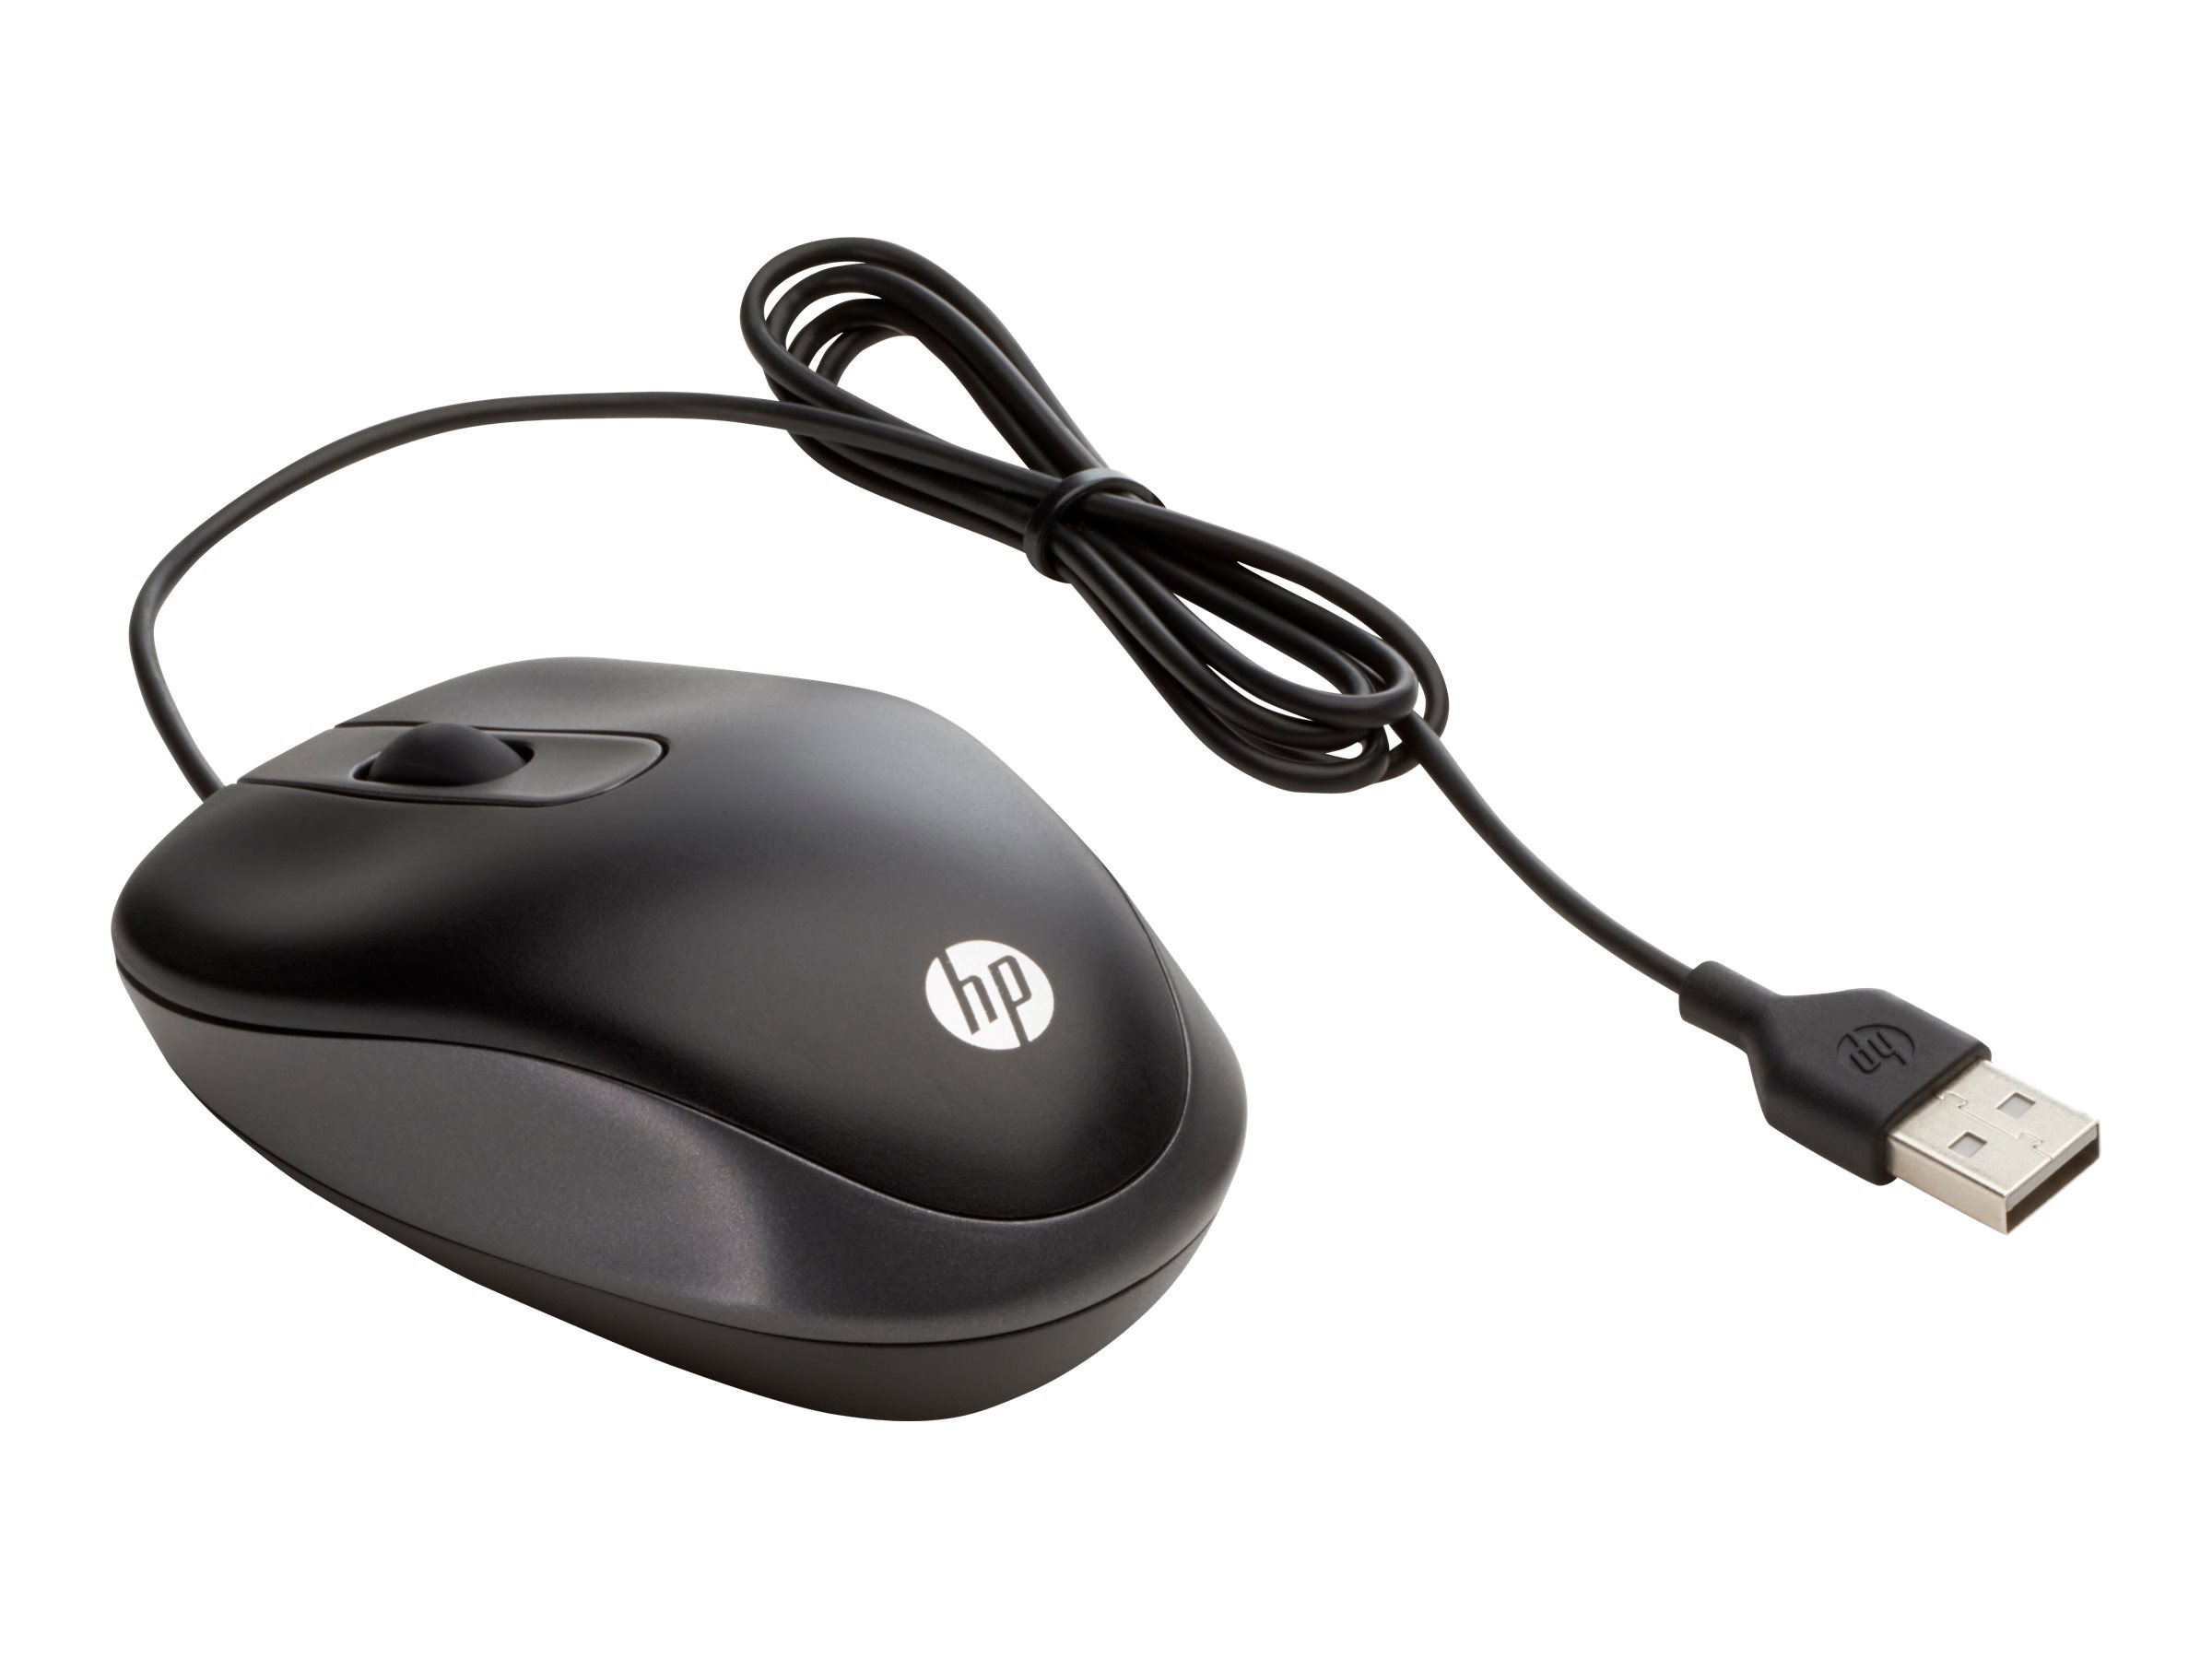 HP Travel - mouse - USB